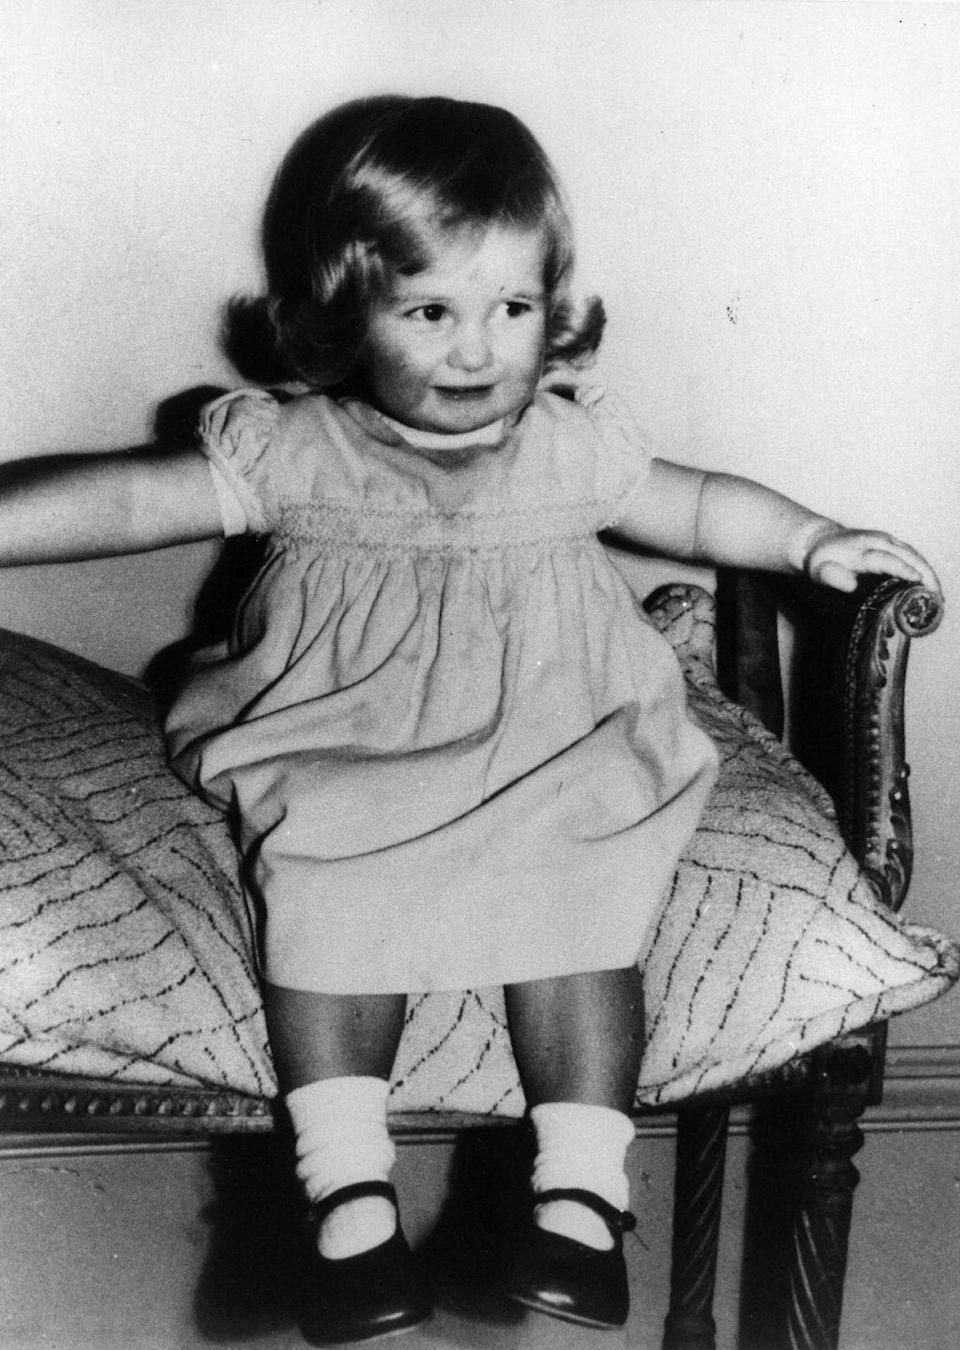 """<p>Diana is photographed on her 2nd birthday at Park House in Sandringham, Norfolk. In 2007, Inge Crane, one of Diana's nannies, opened up to <a href=""""http://www.cnn.com/2007/WORLD/europe/08/15/diana.childhood/"""" rel=""""nofollow noopener"""" target=""""_blank"""" data-ylk=""""slk:CNN"""" class=""""link rapid-noclick-resp"""">CNN</a> about Diana Frances Spencer's childhood. """"There's always been something special about Park House. It's difficult to put a finger on what it is,"""" Crane said, adding that Diana was a tomboy who loved the outdoors and animals. """"She was quite a lovable child. She was very, very cuddly.""""</p>"""